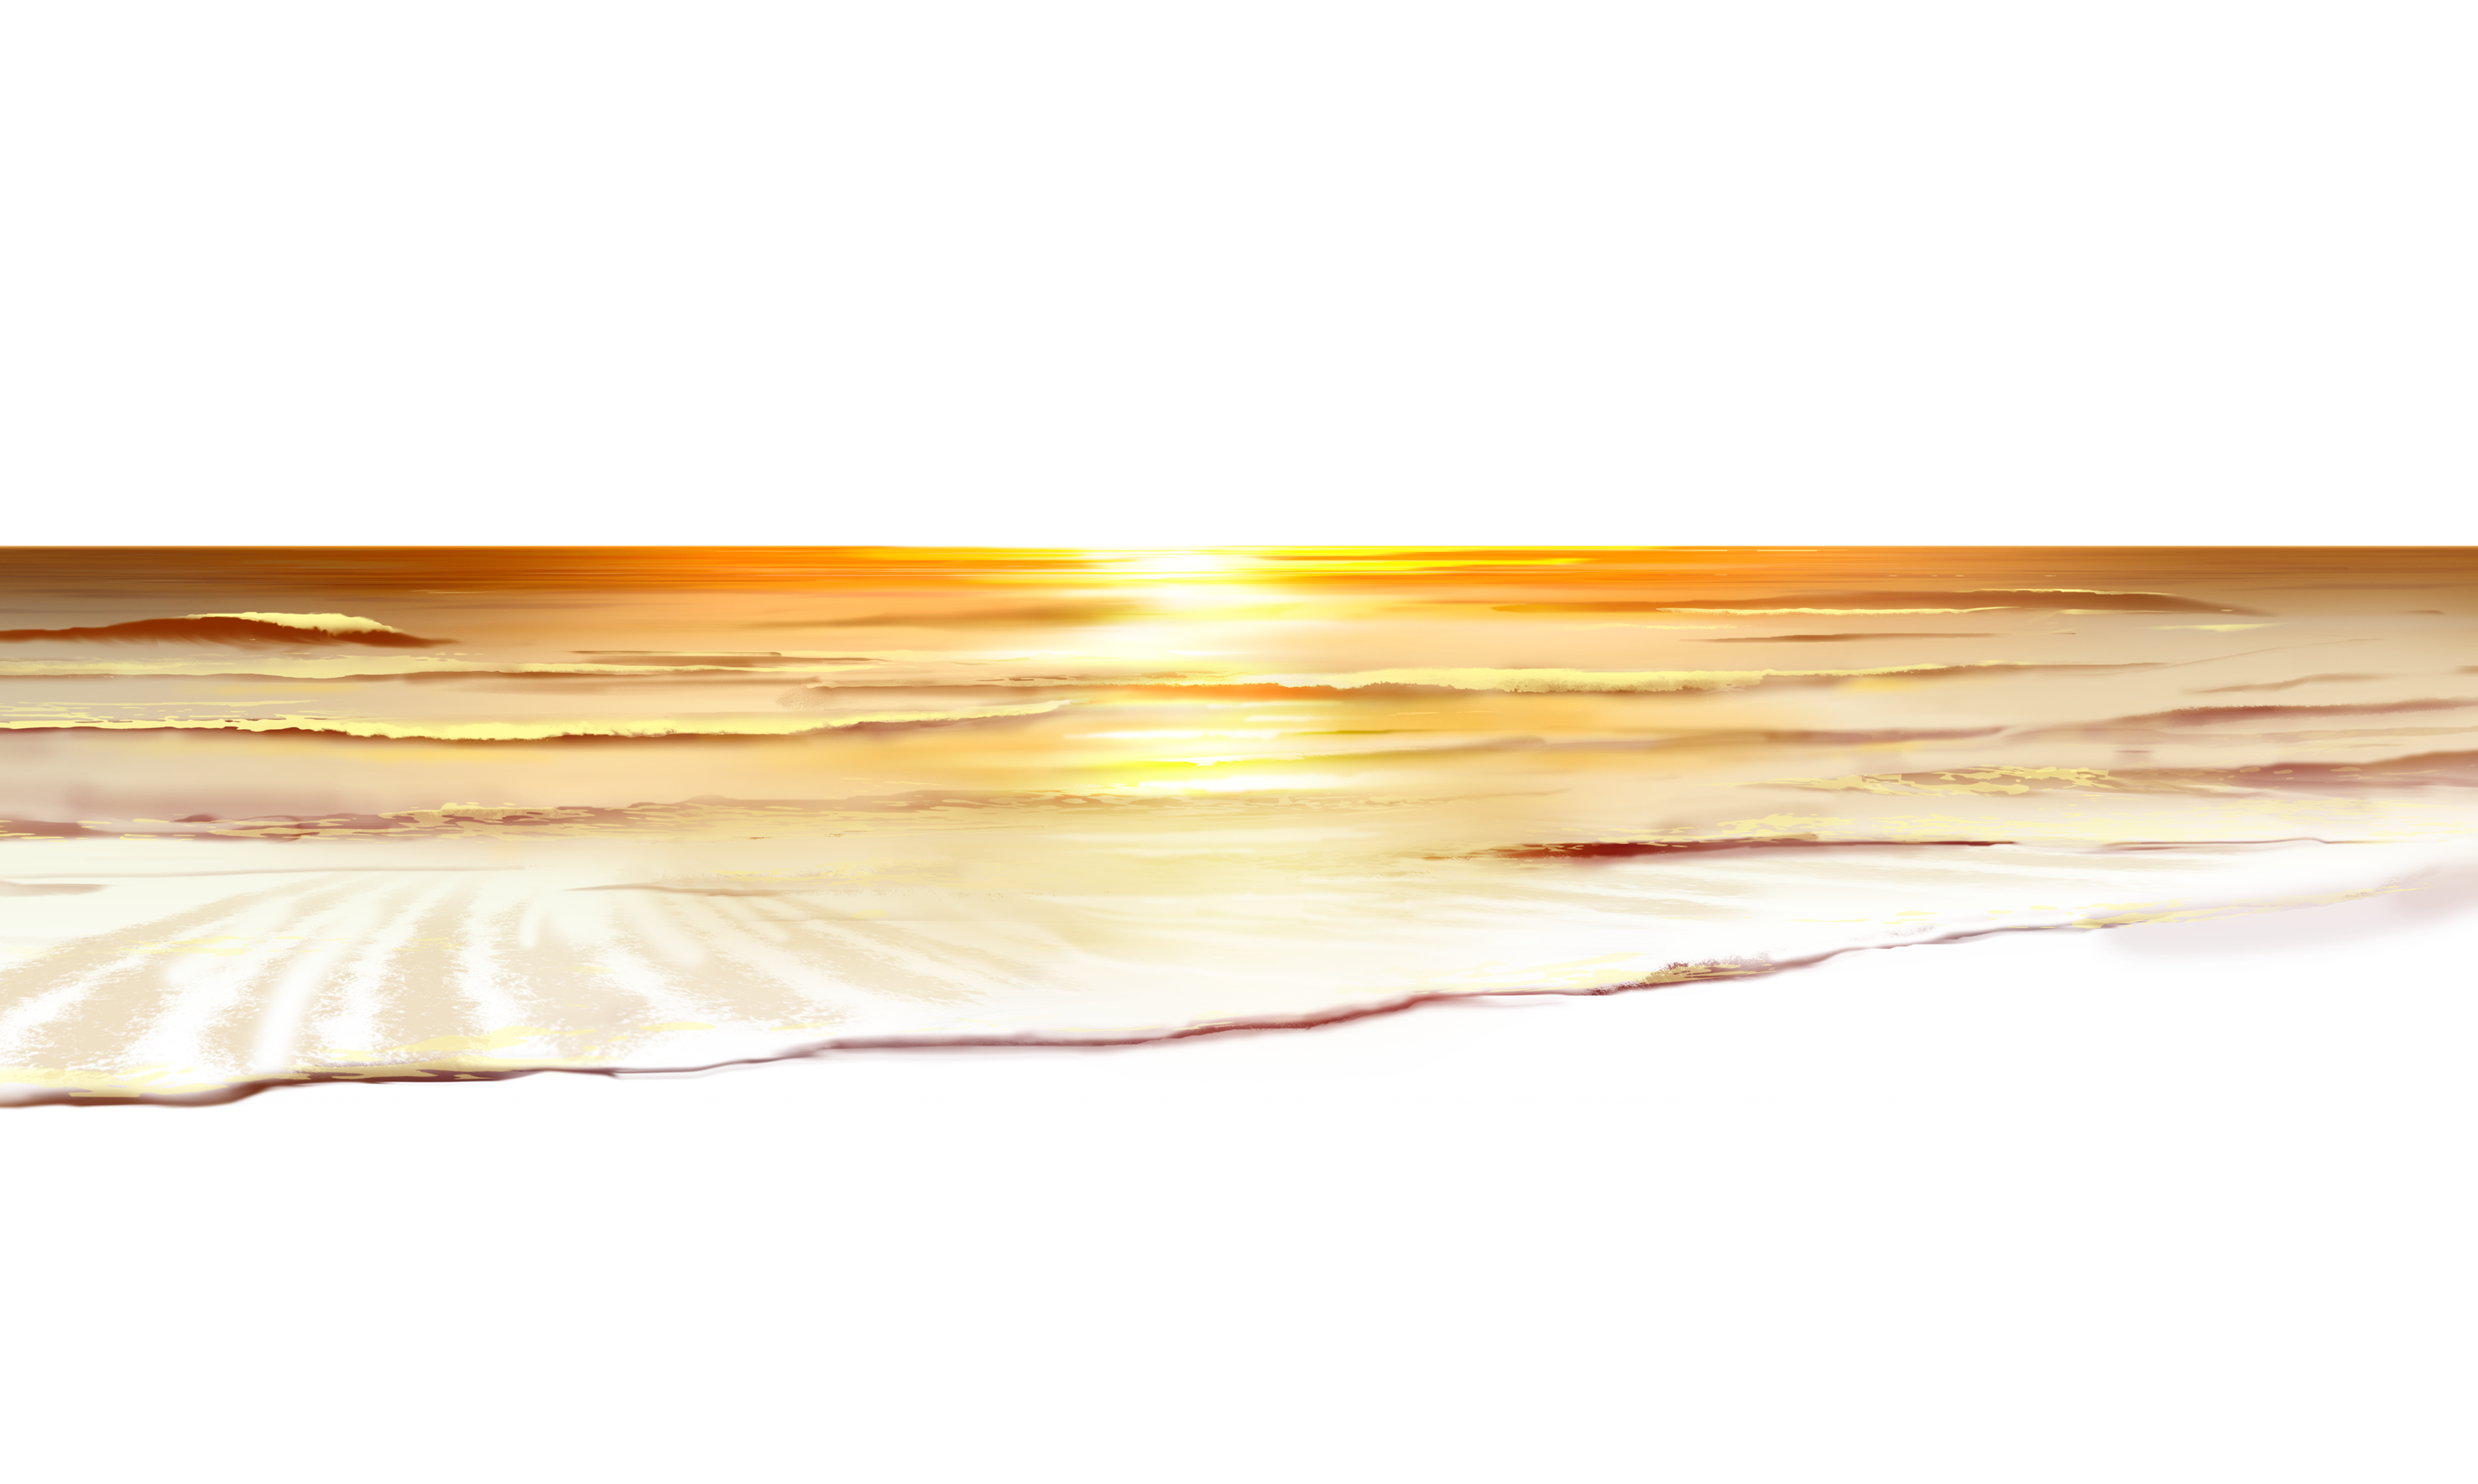 Sunset png image. Sea ground clipart gallery